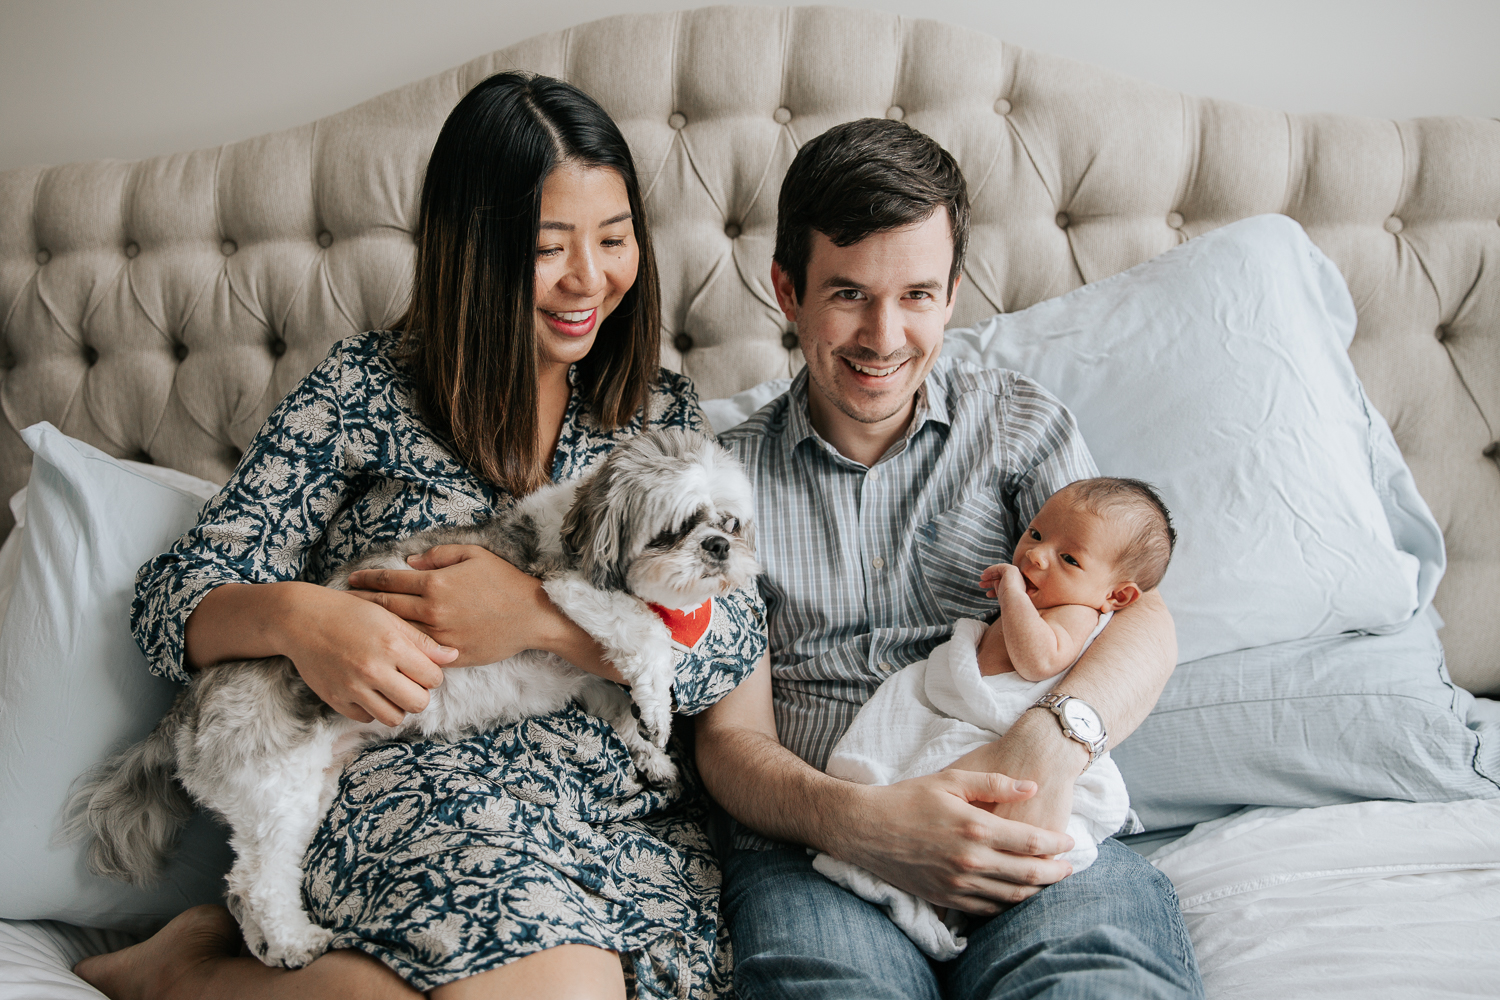 new parents sitting on master bed holding 2 week old baby girl and shitzu dog - Barrie Lifestyle Photography